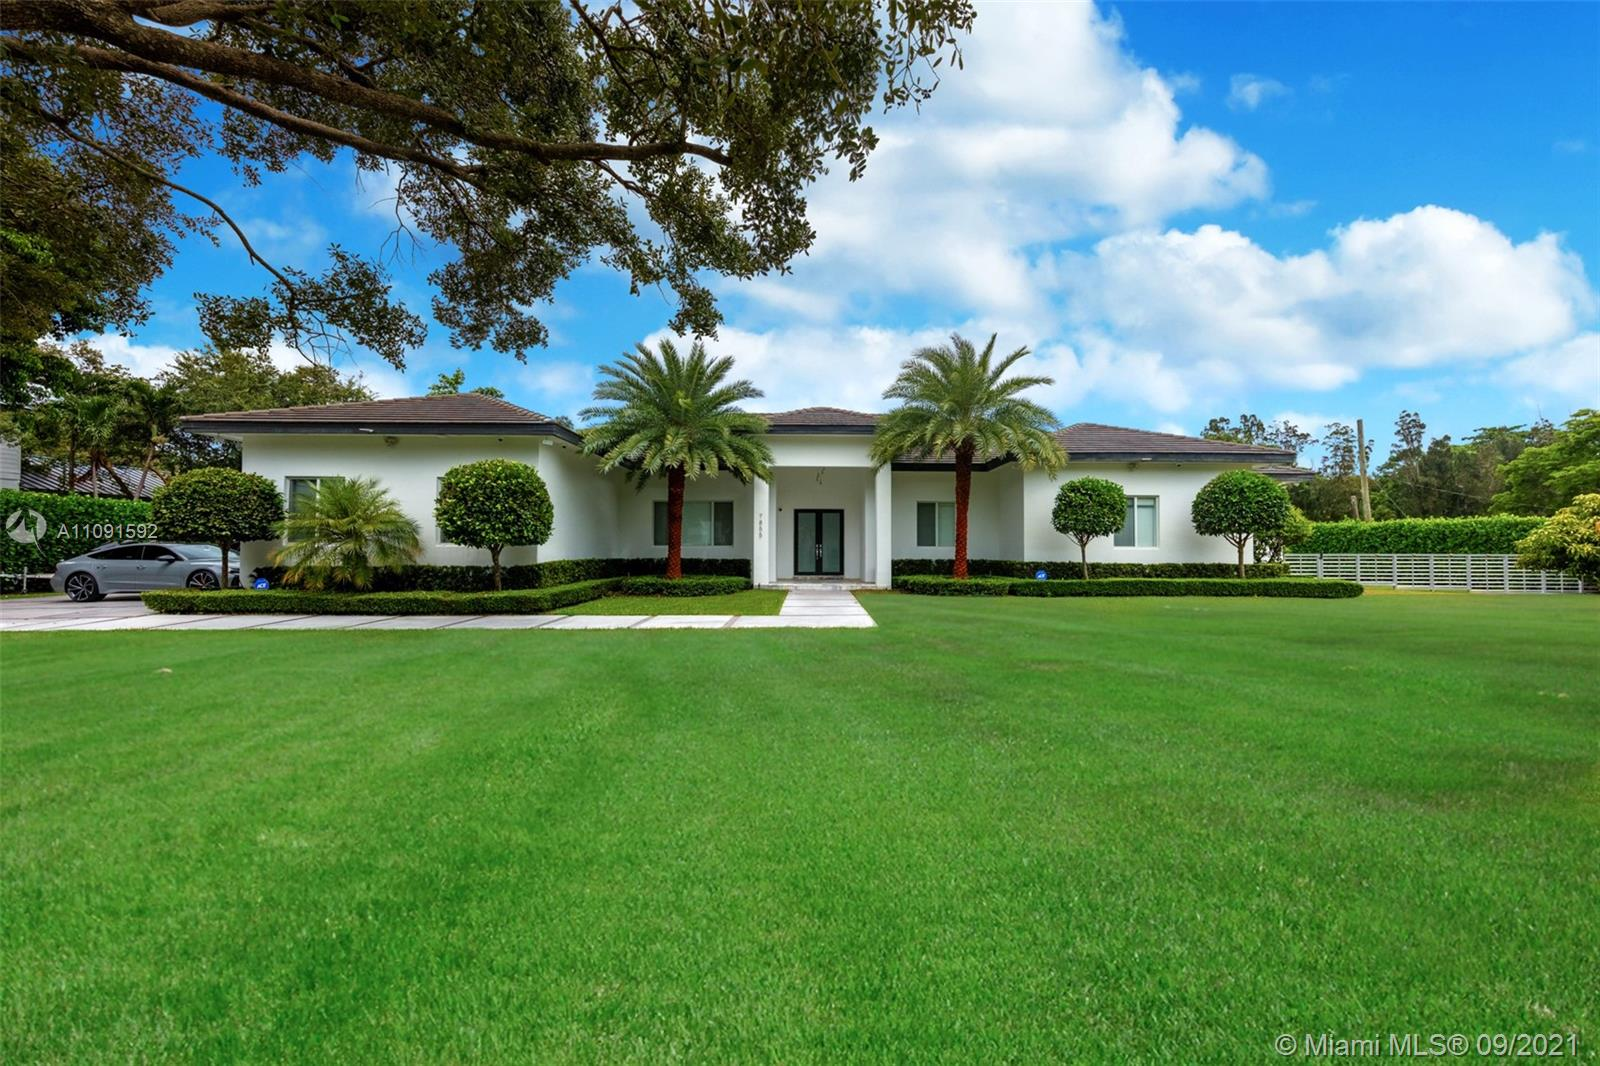 7855 129th Ter, Pinecrest, Florida 33156